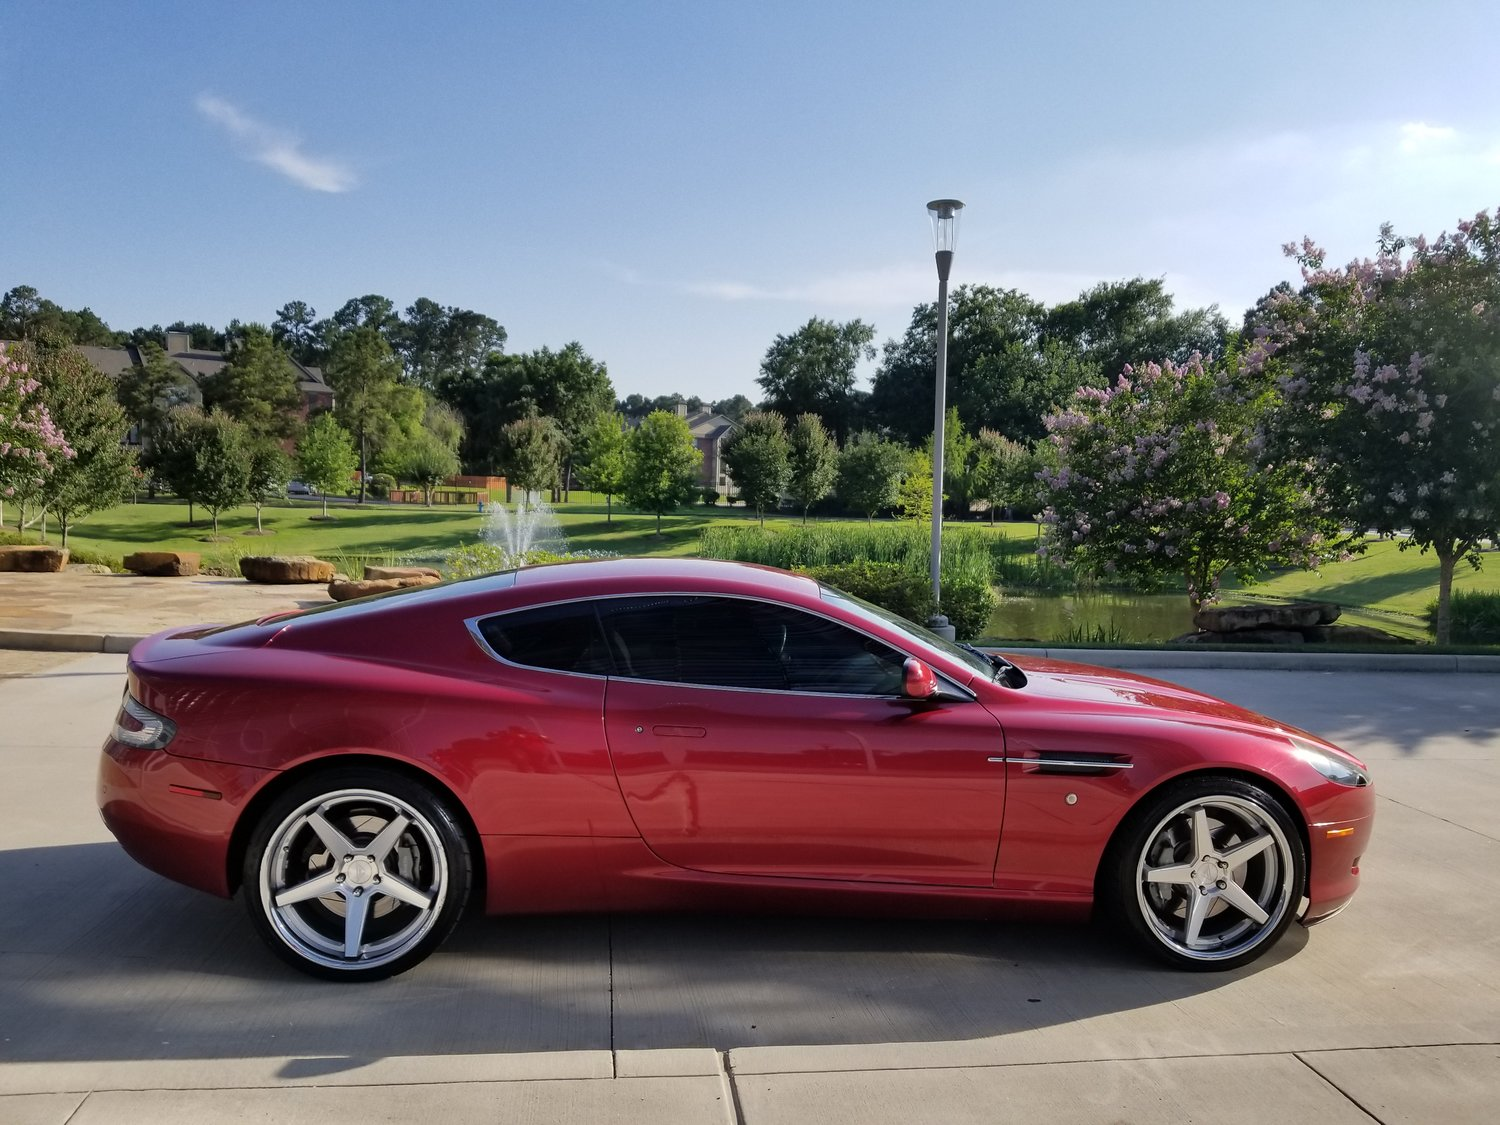 Rent A Aston Martin Db9 In Houston Exotic Car Rental Houston The Woodlands